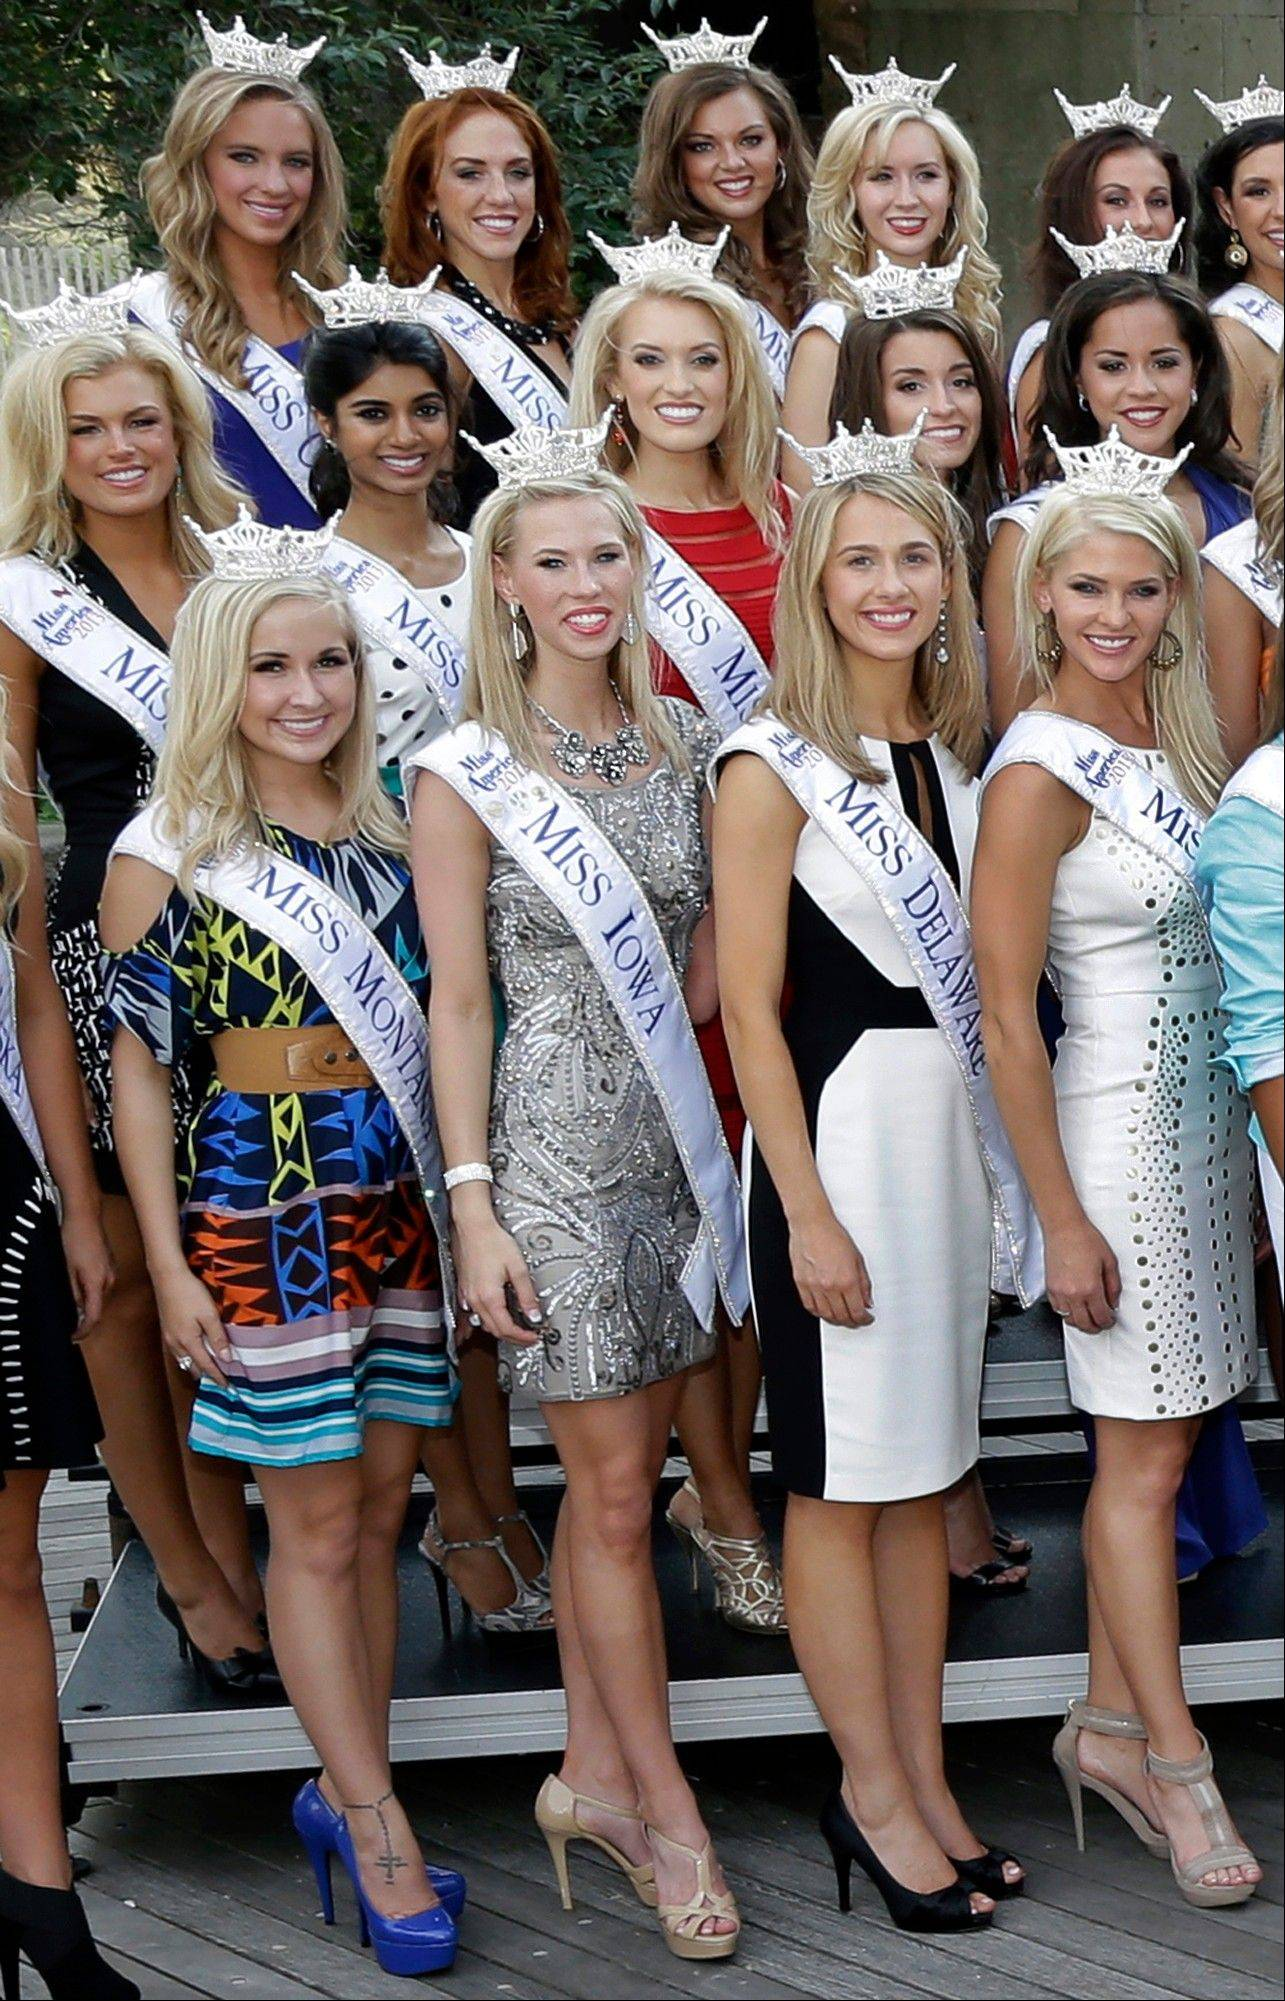 Miss Iowa, Nicole Kelly, front row, second from left, stands with other Miss America contestants during arrival ceremonies in Atlantic City, N.J., last week.